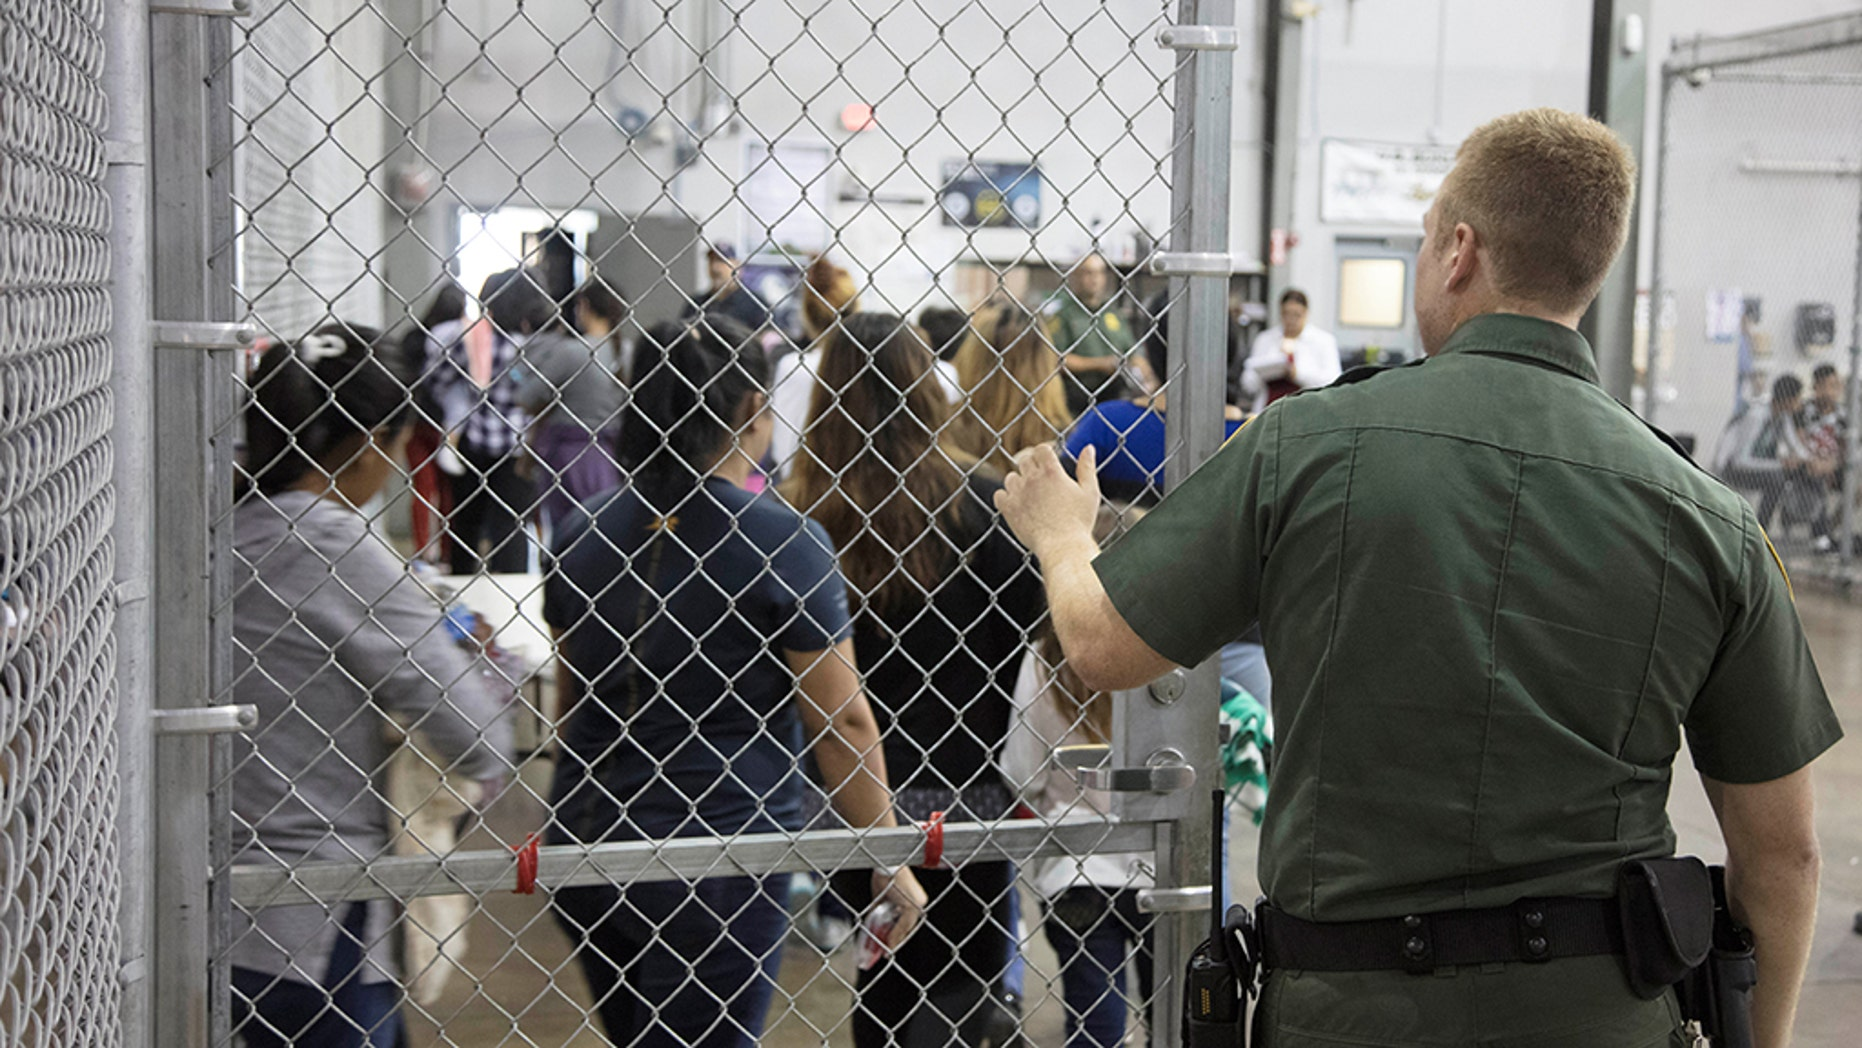 A view of inside U.S. Customs and Border Protection (CBP) detention facility shows detainees inside fenced areas at Rio Grande Valley Centralized Processing Center in Rio Grande City, Texas, in June.